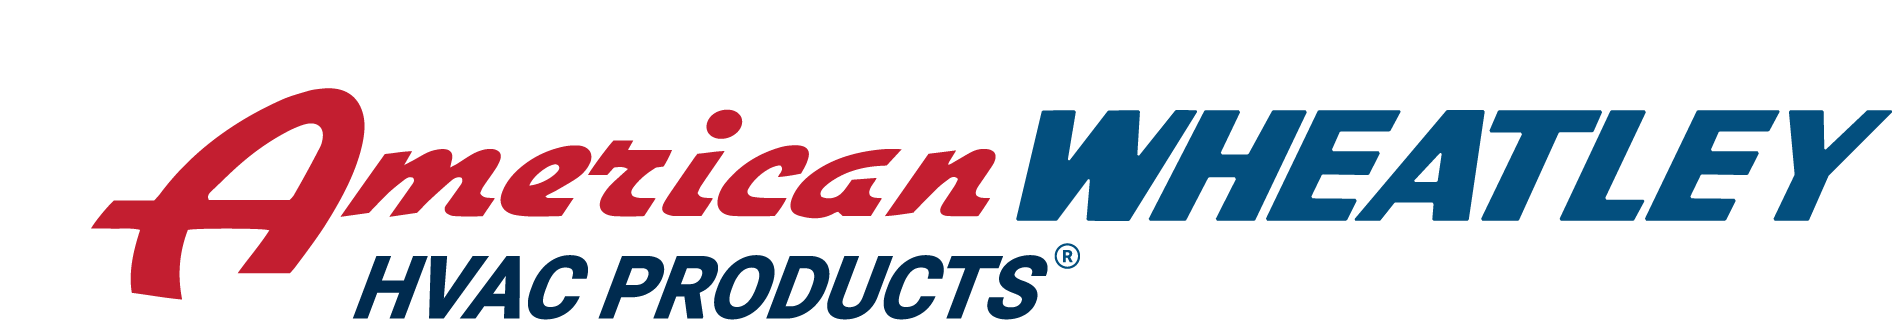 American Wheatley HVAC Products Logo